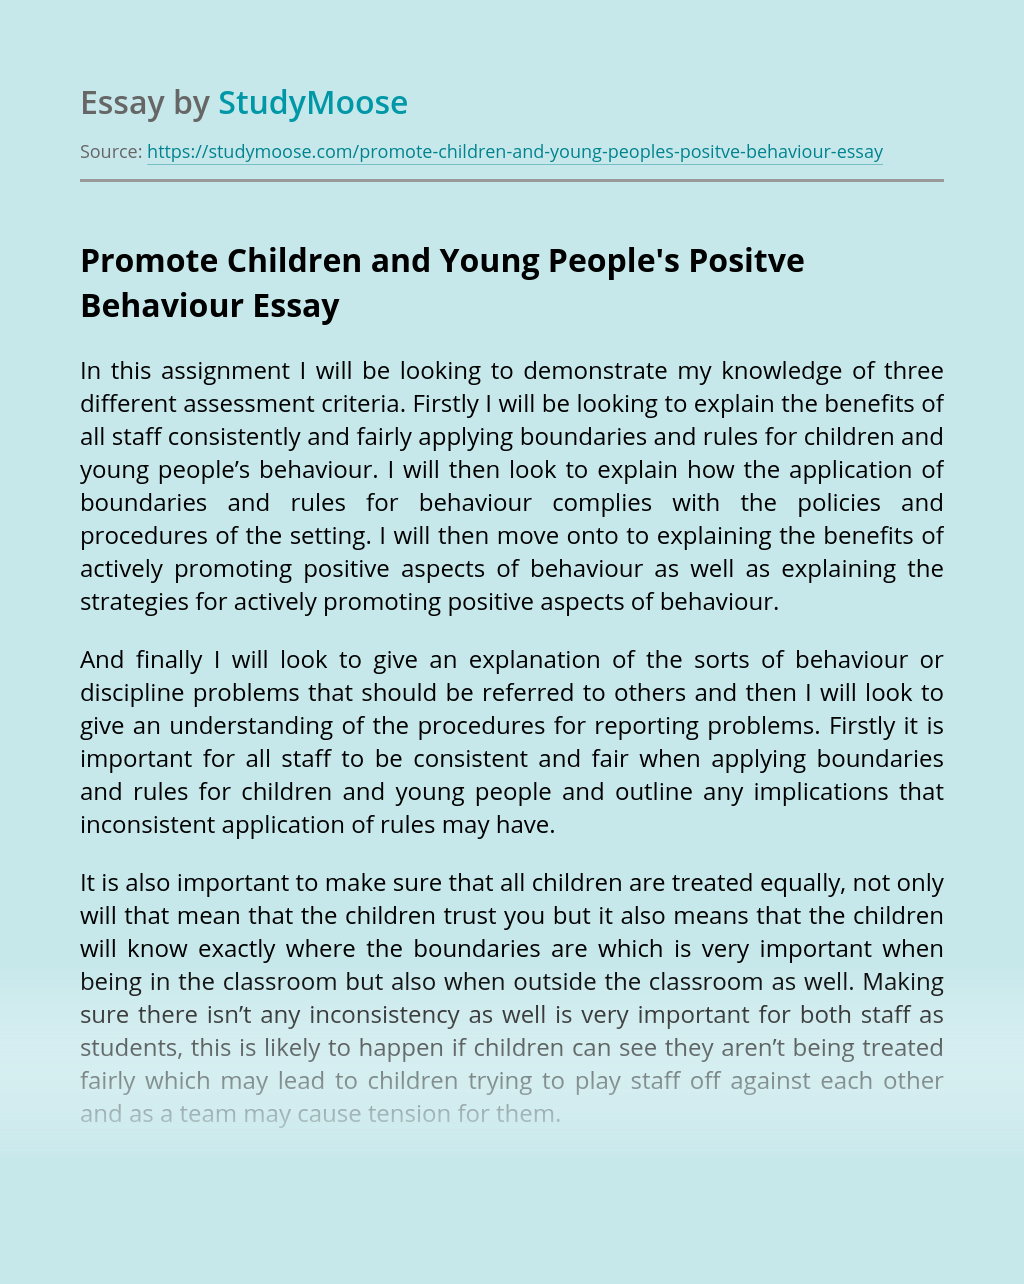 Promote Children and Young People's Positve Behaviour